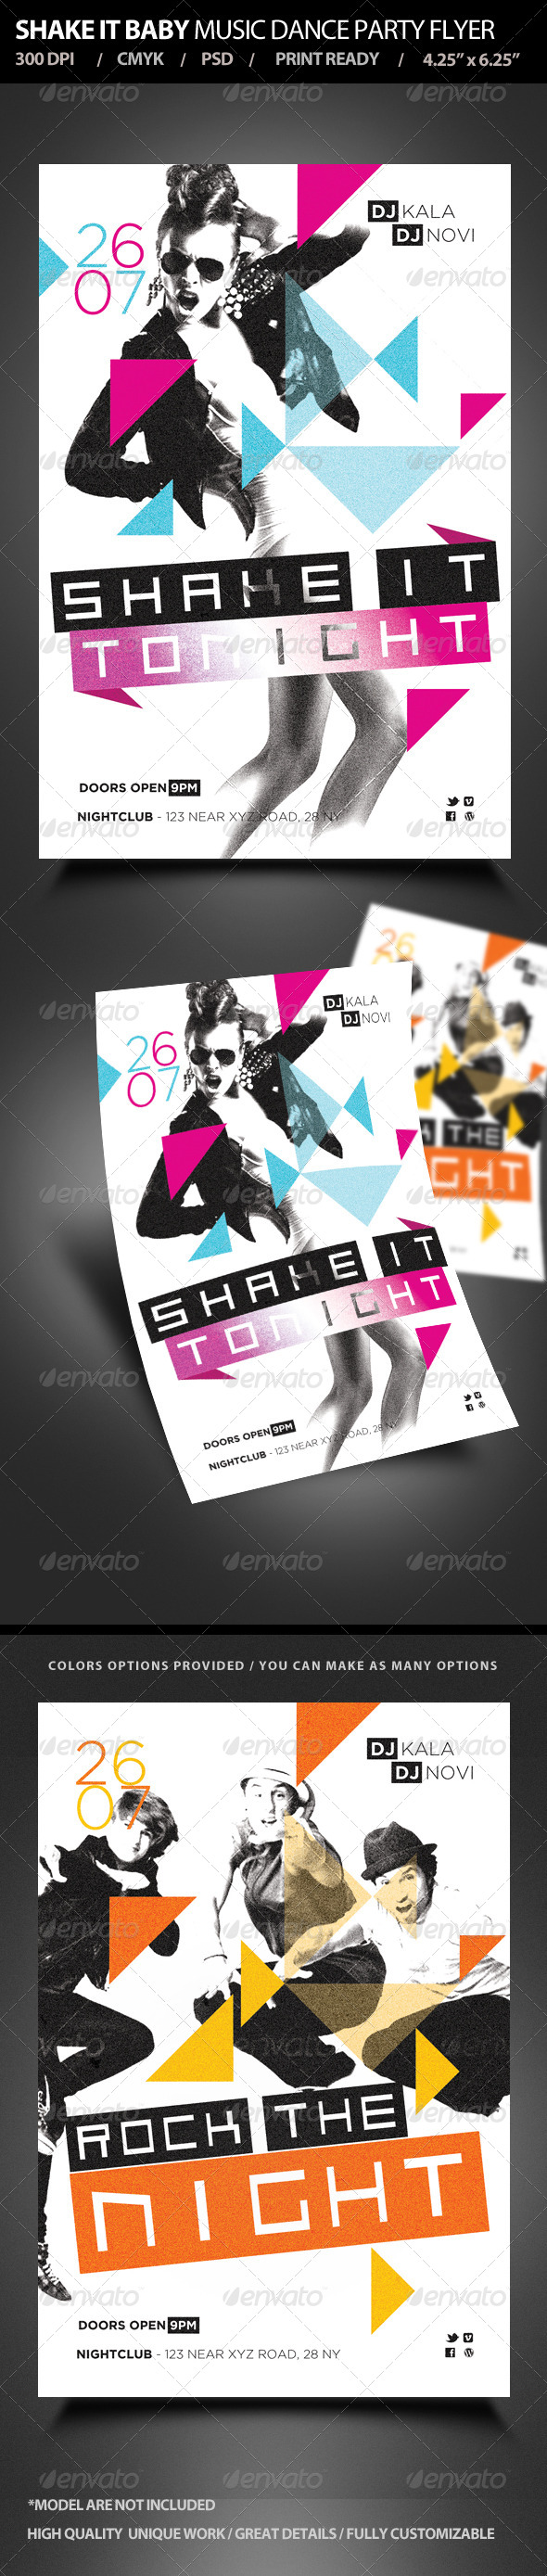 Shake It Music Dance Party Flyer - Clubs & Parties Events